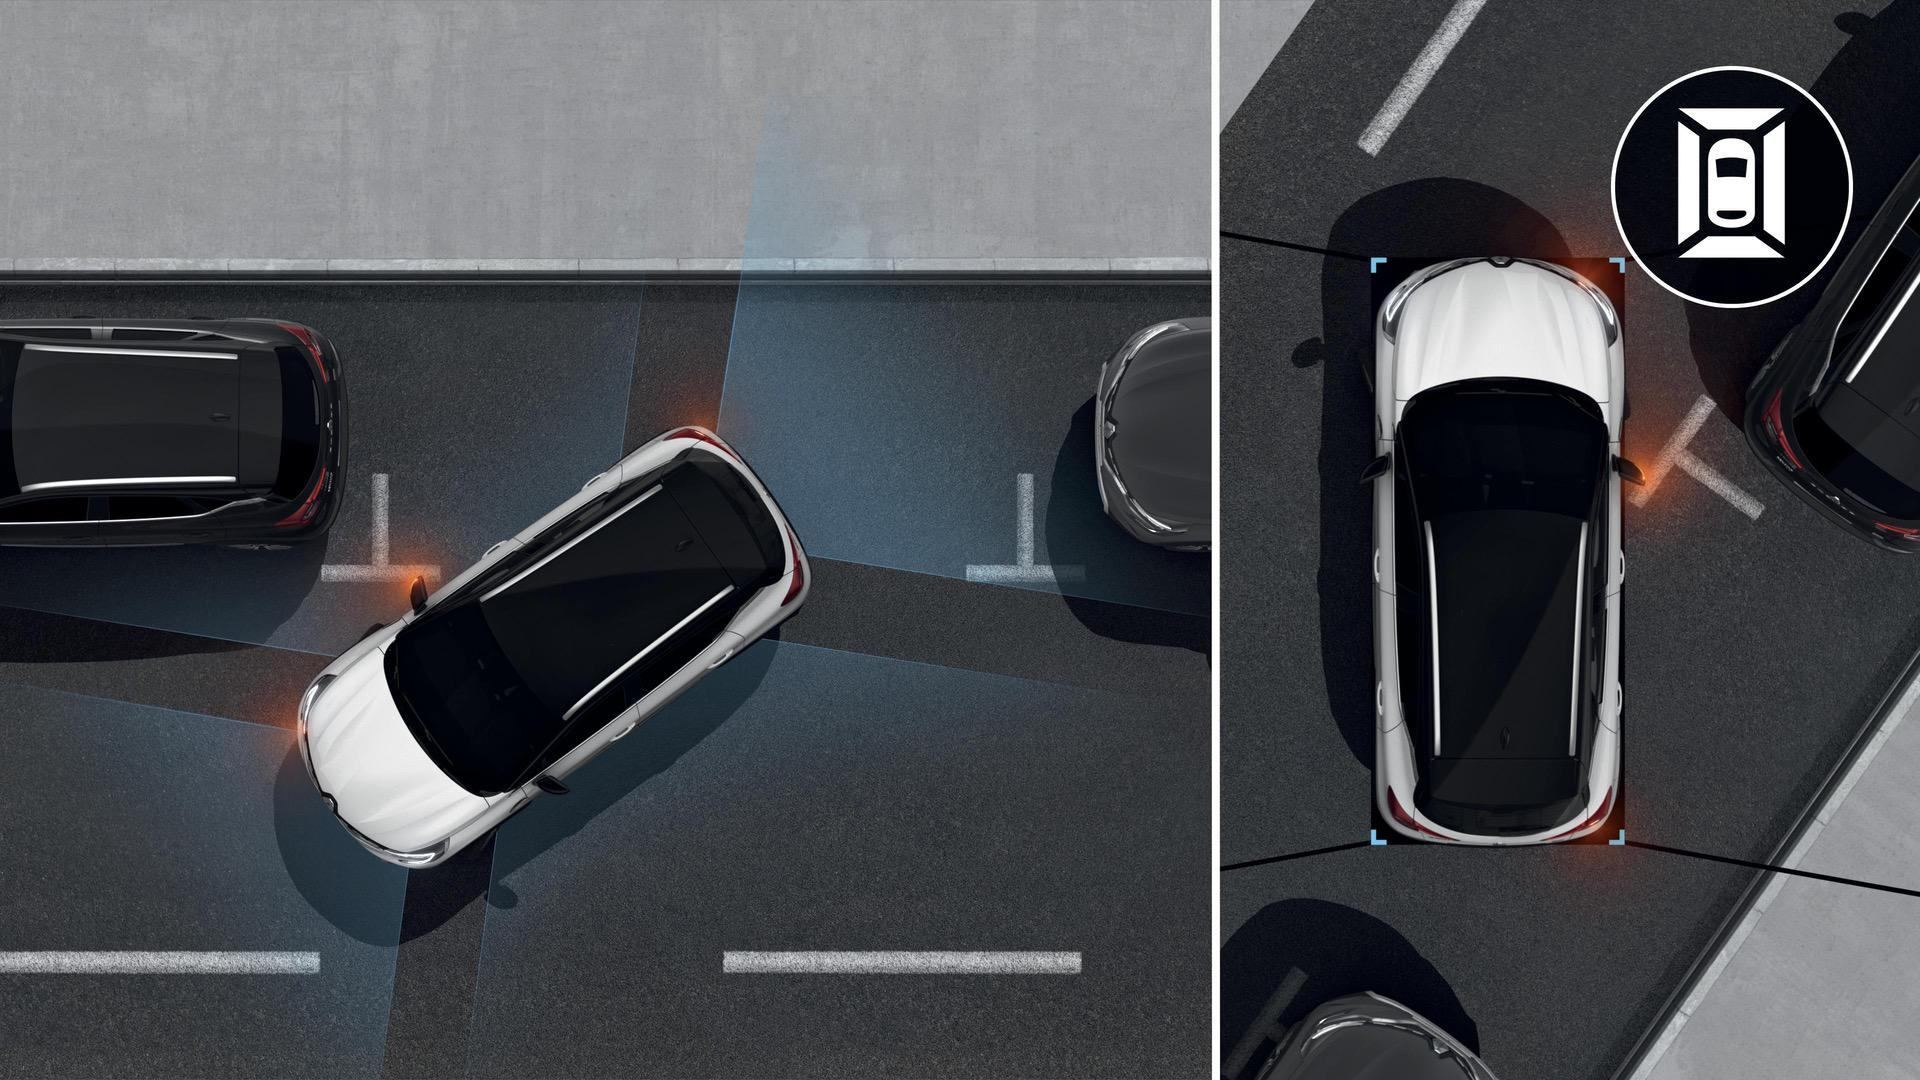 ILLUSTRATIONS TECHNIQUES RENAULT CAPTUR (HJB) - PHASE 1